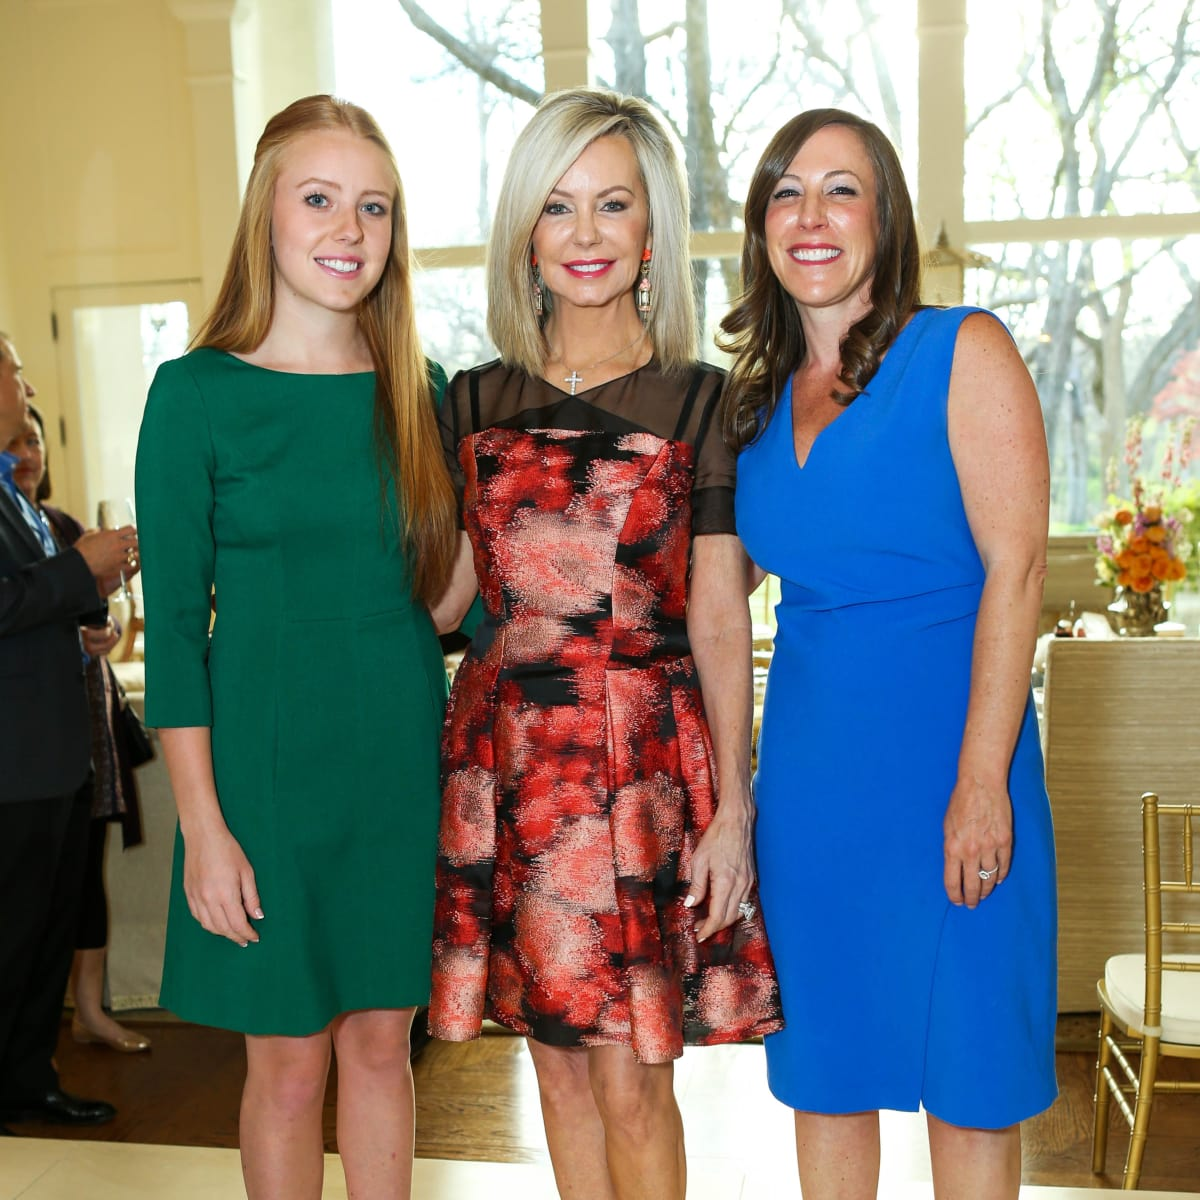 Bryan's House 30th anniversary kickoff, Lisa Cooley, Ciara Cooley, Stacey Roush